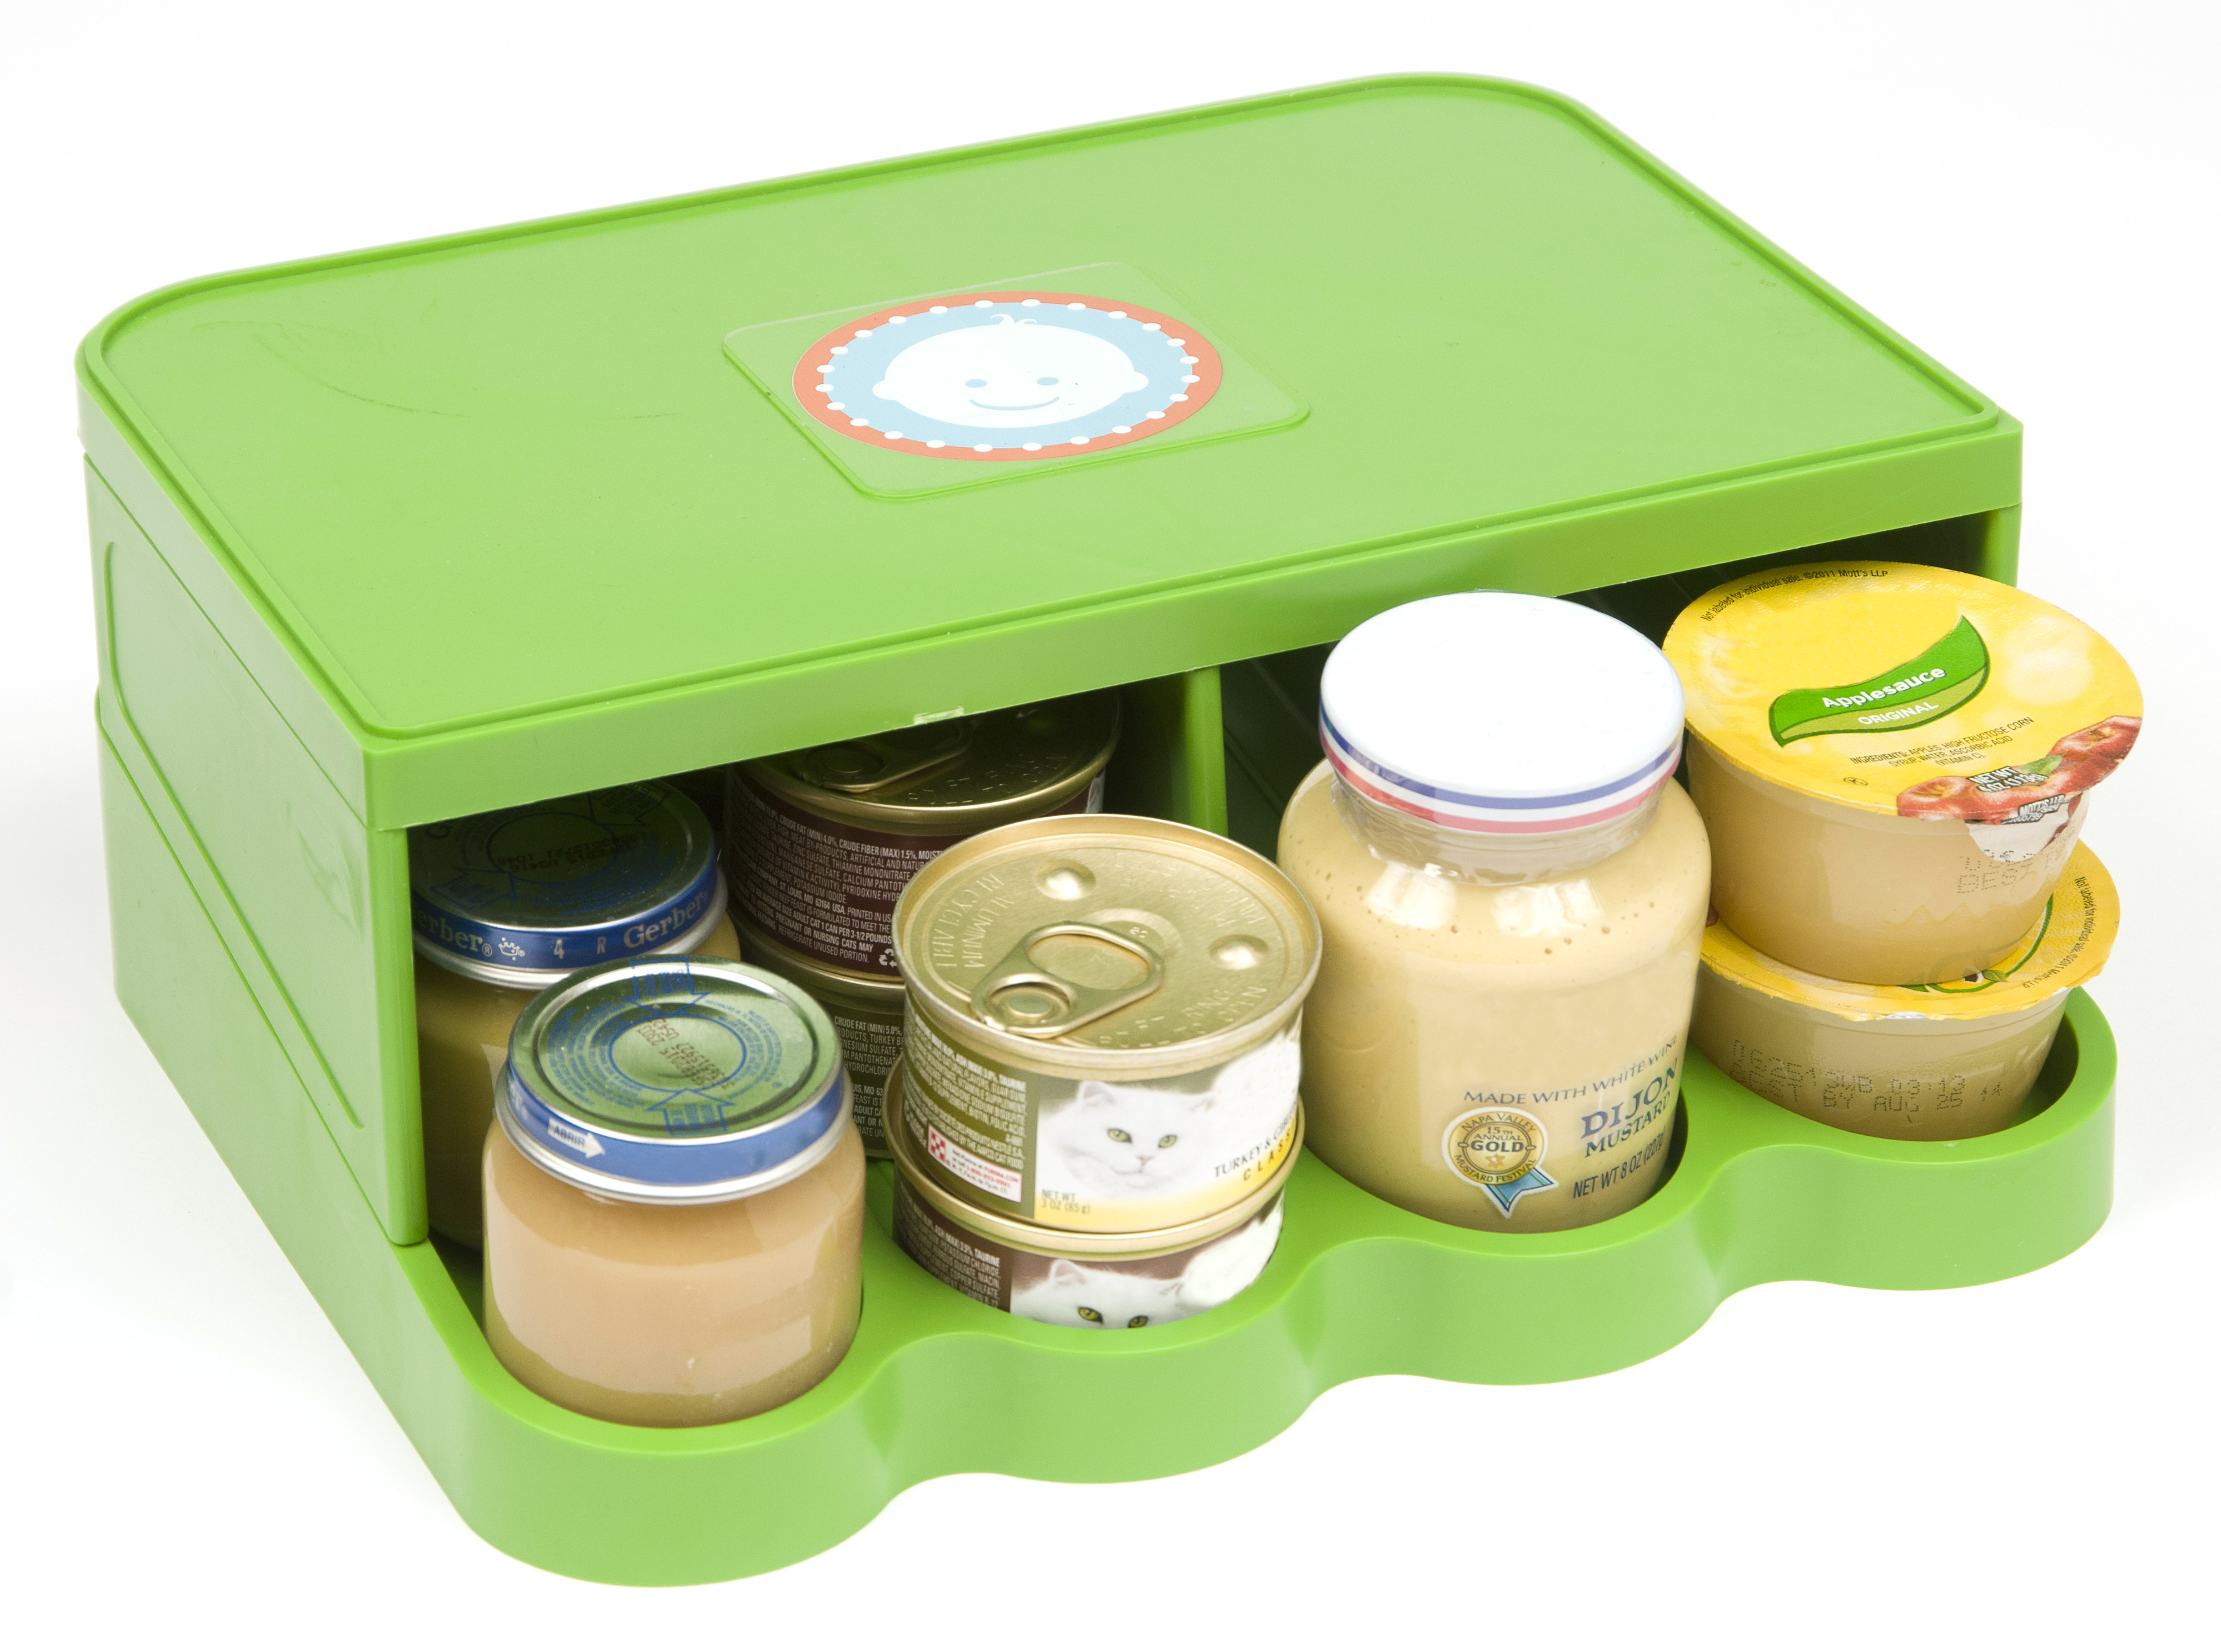 Best ideas about Baby Food Storage . Save or Pin Baby food storage solutions to help you cut the clutter Now.